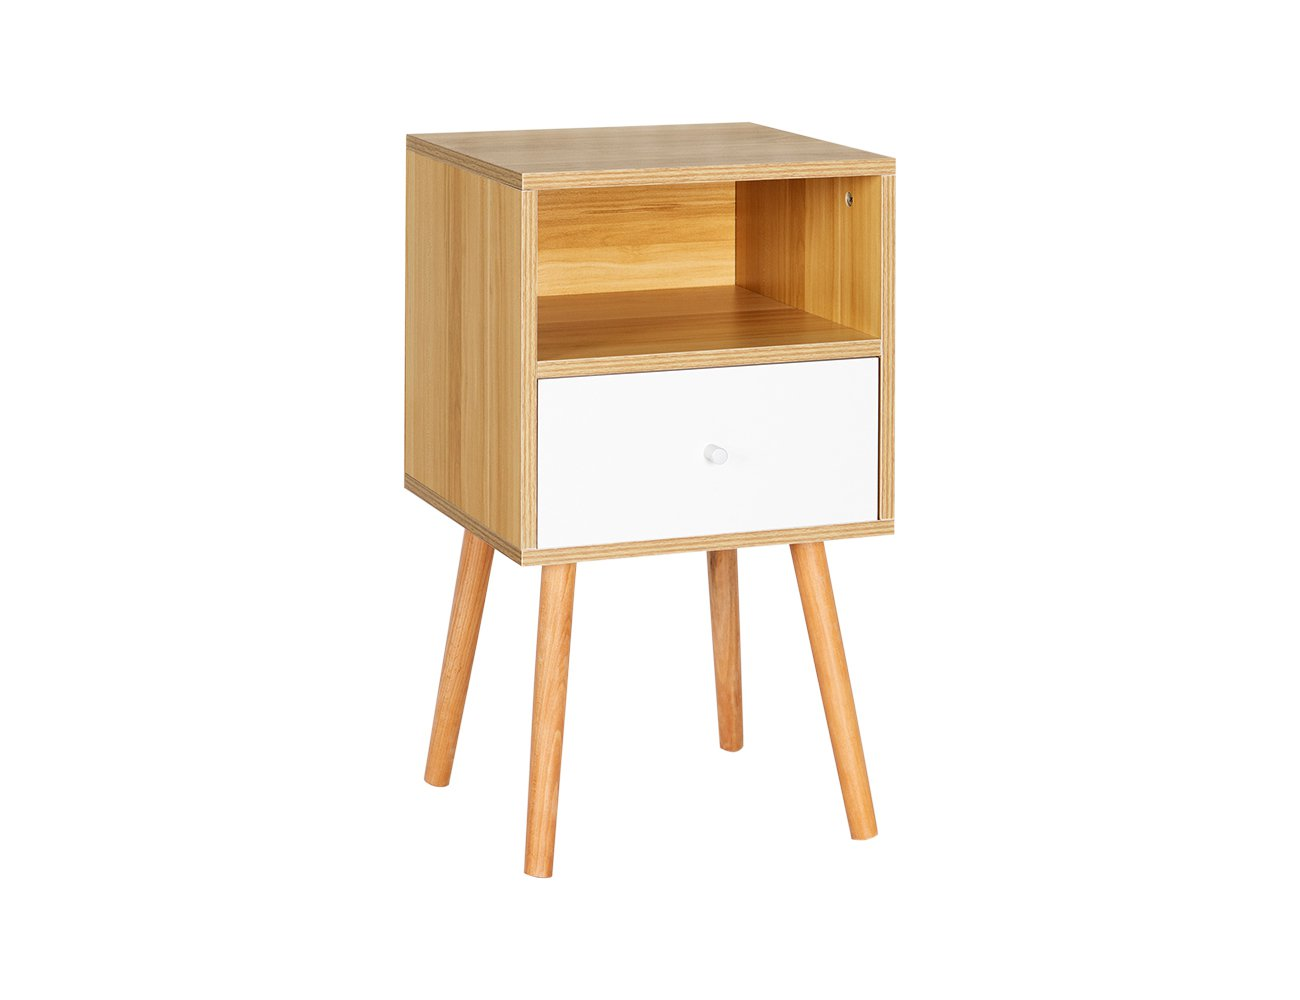 High Leg Bedside Table with Drawer